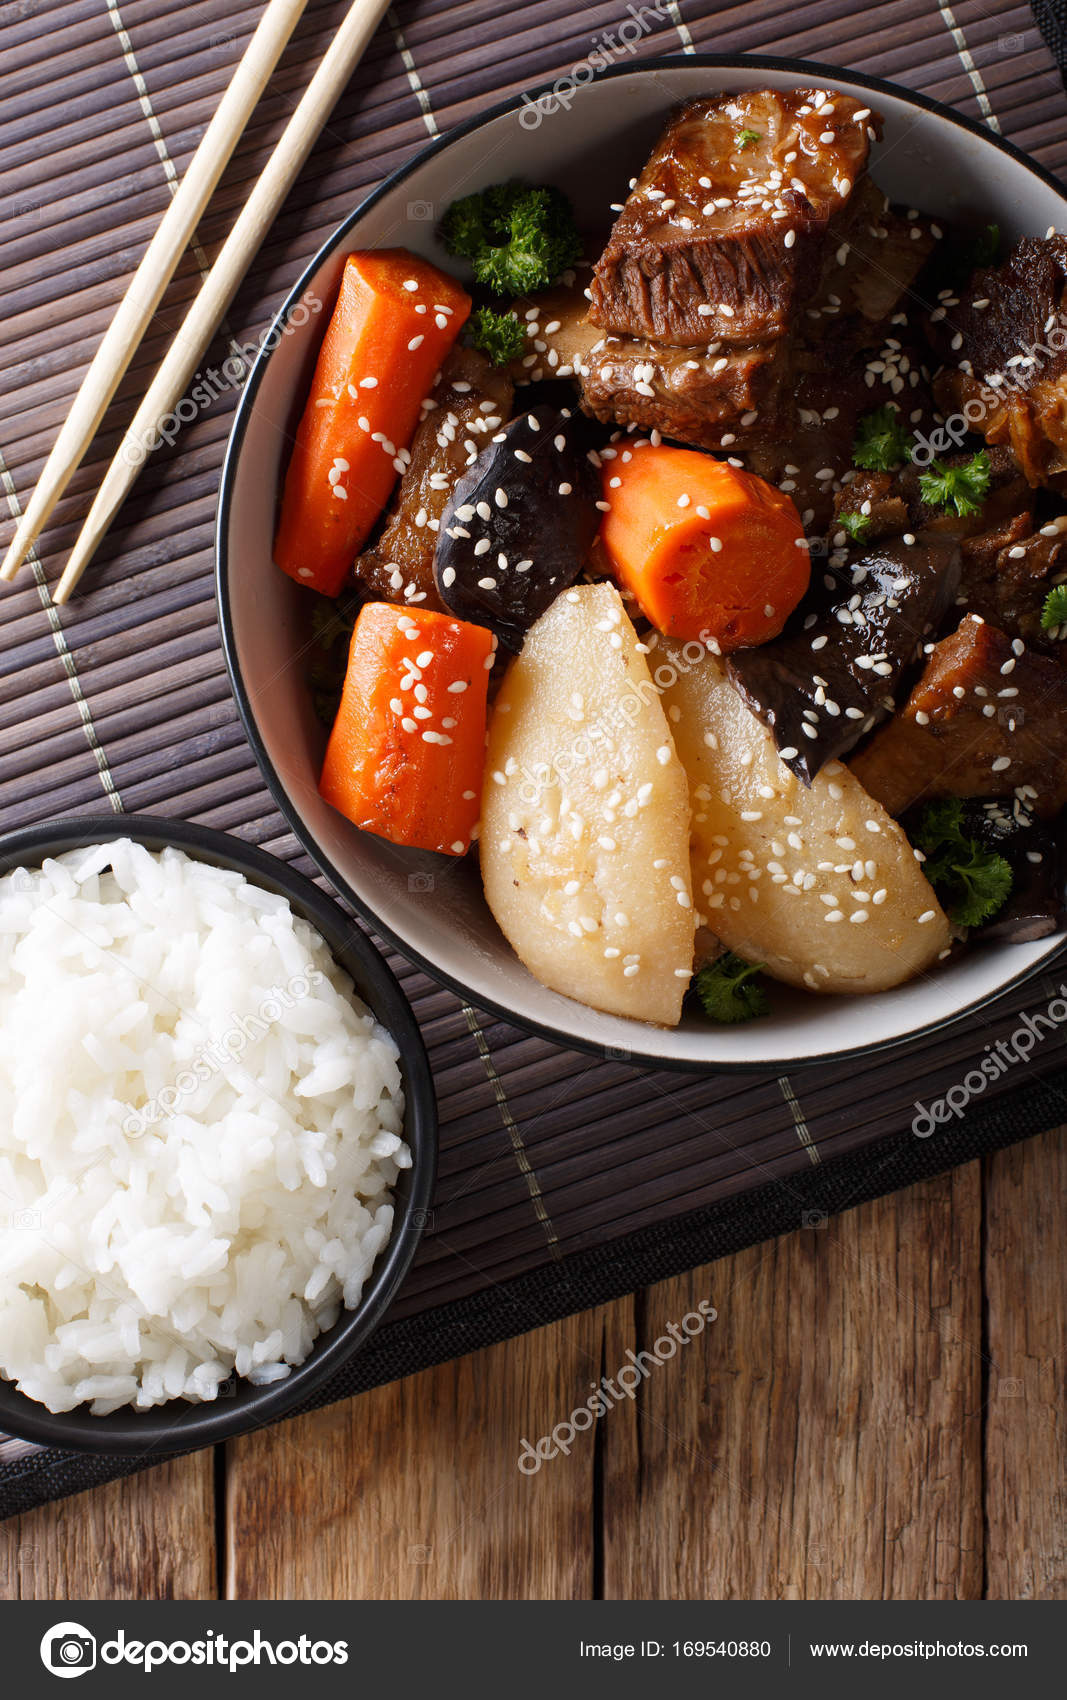 Watch Kalbi jjim is slowly braised beef short ribs in a soy sauce, sesame oil, and garlic sauce. It is often prepared for special occasions video